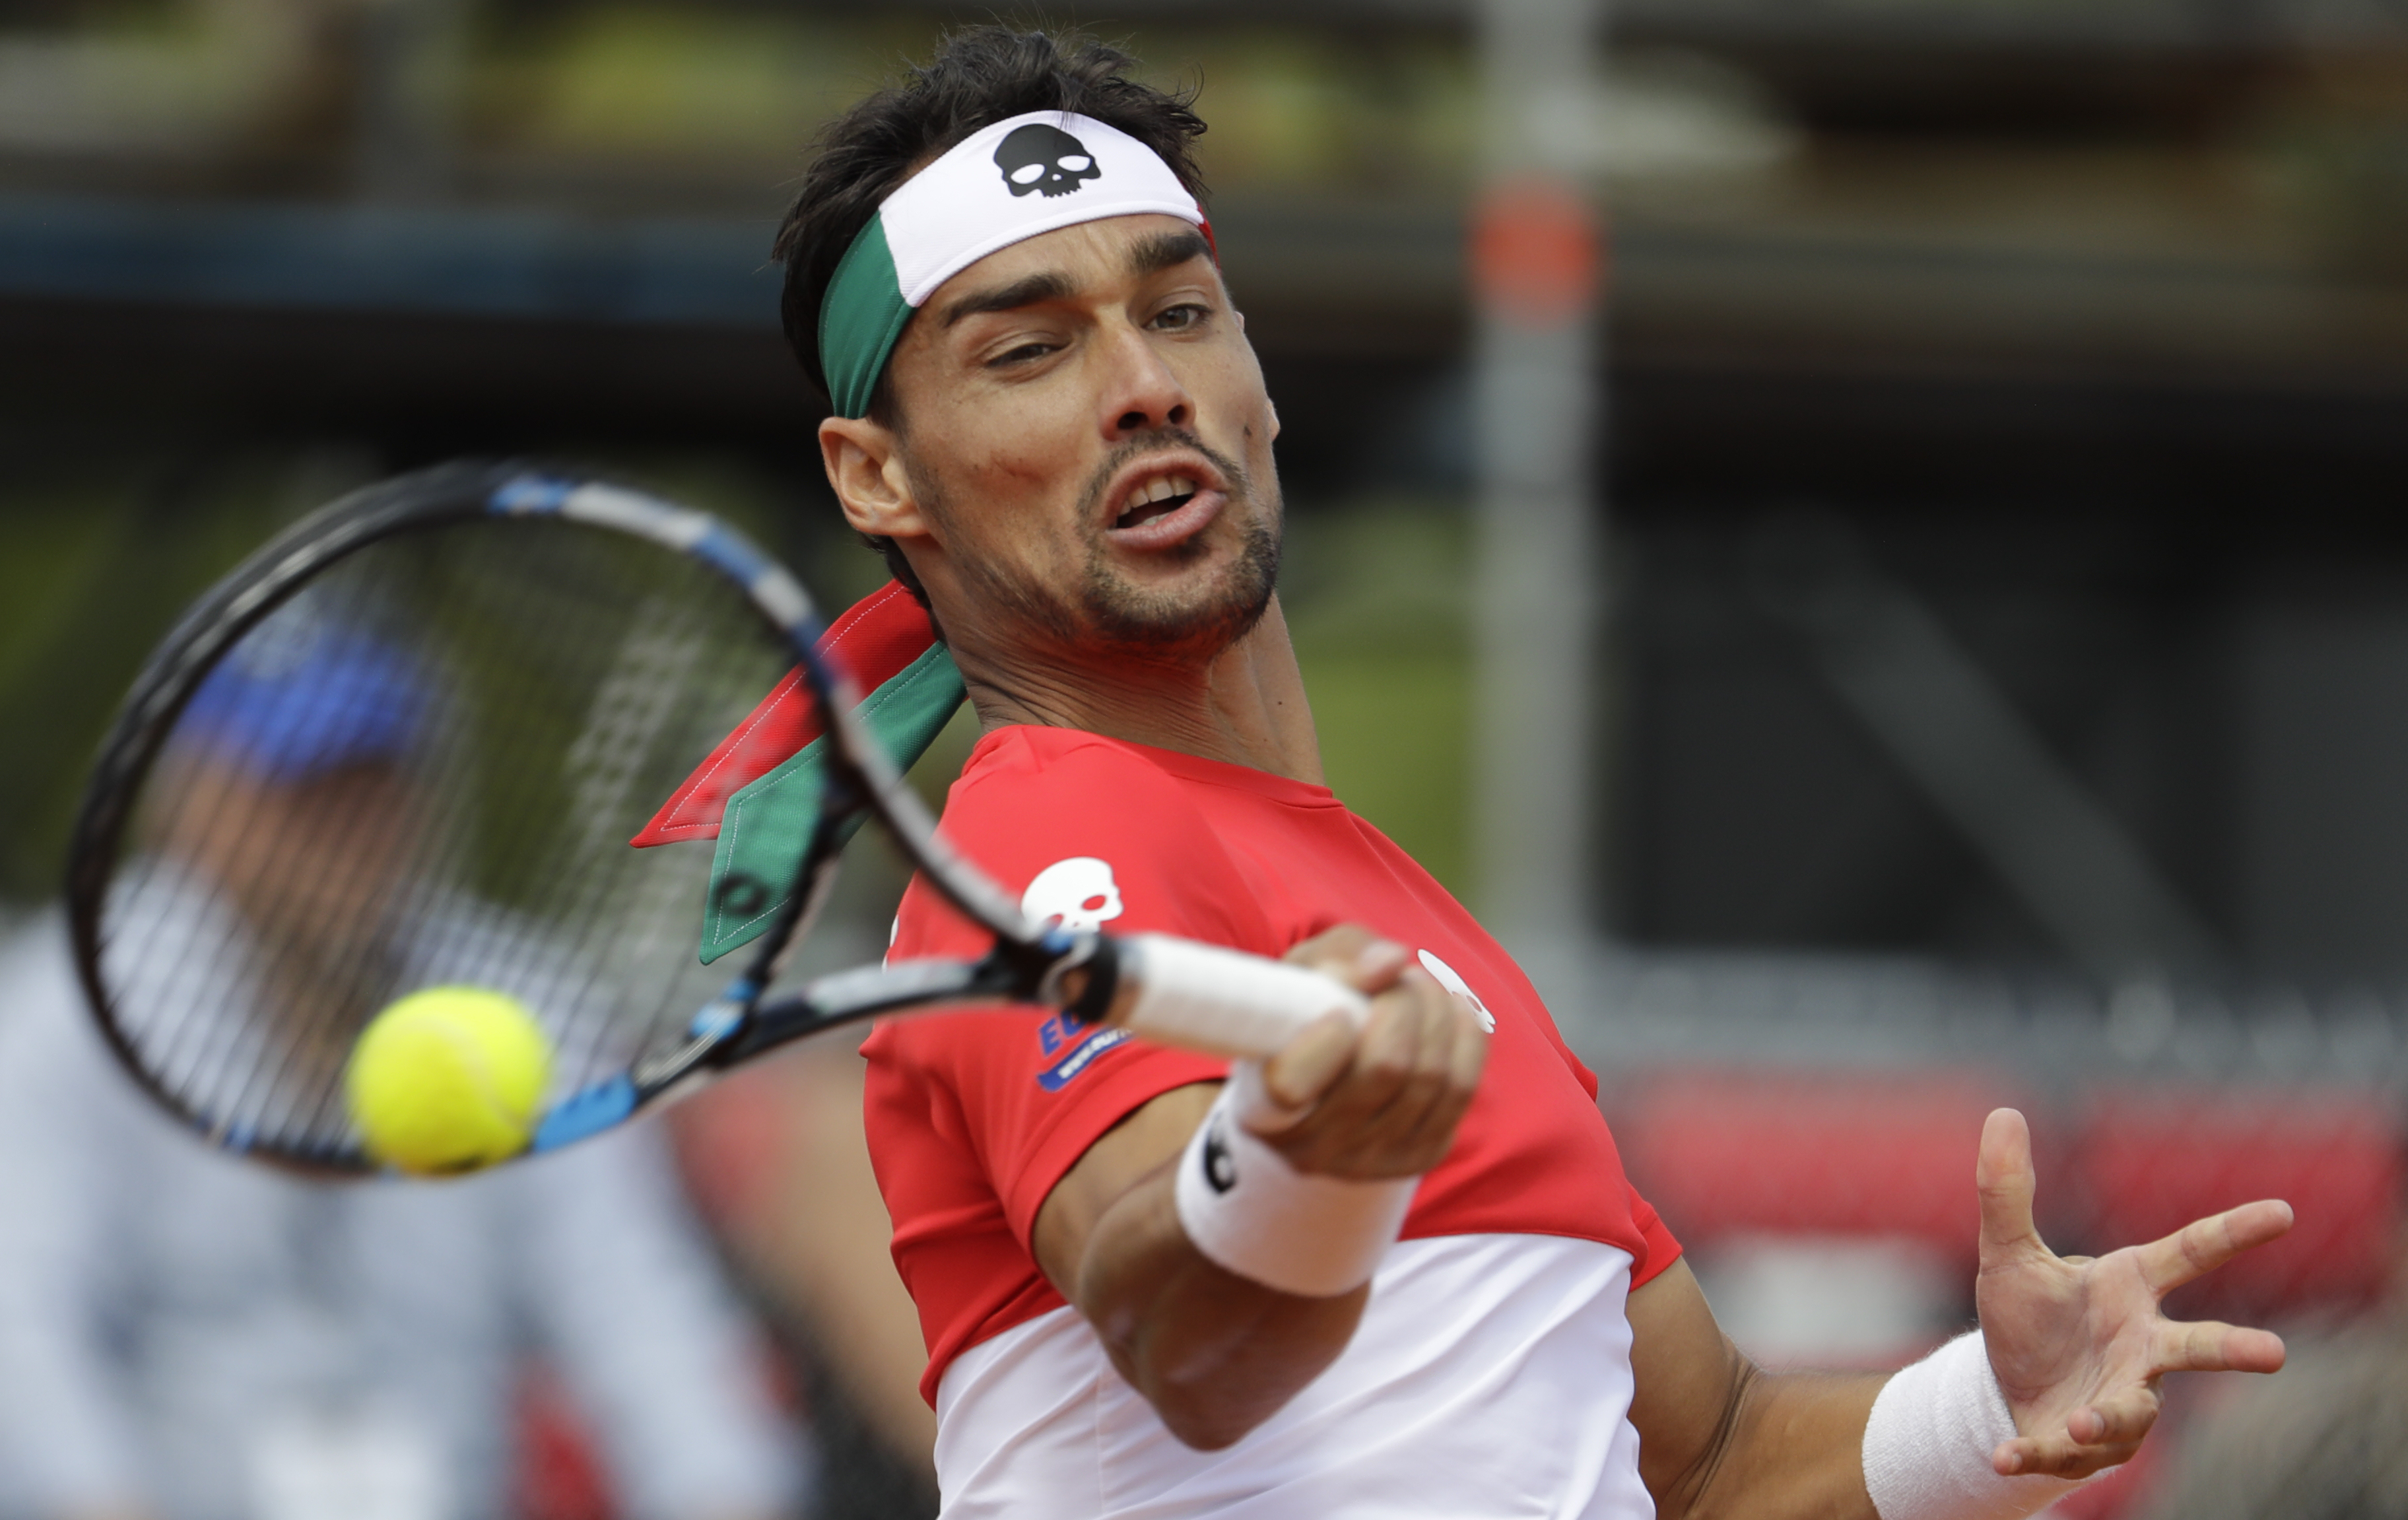 Italy's Fabio Fognini returns the ball to Argentina's Guido Pella during the Davis Cup first round tennis match in Buenos Aires, Argentina, Monday, Feb. 6, 2017.(AP Photo/Natacha Pisarenko)